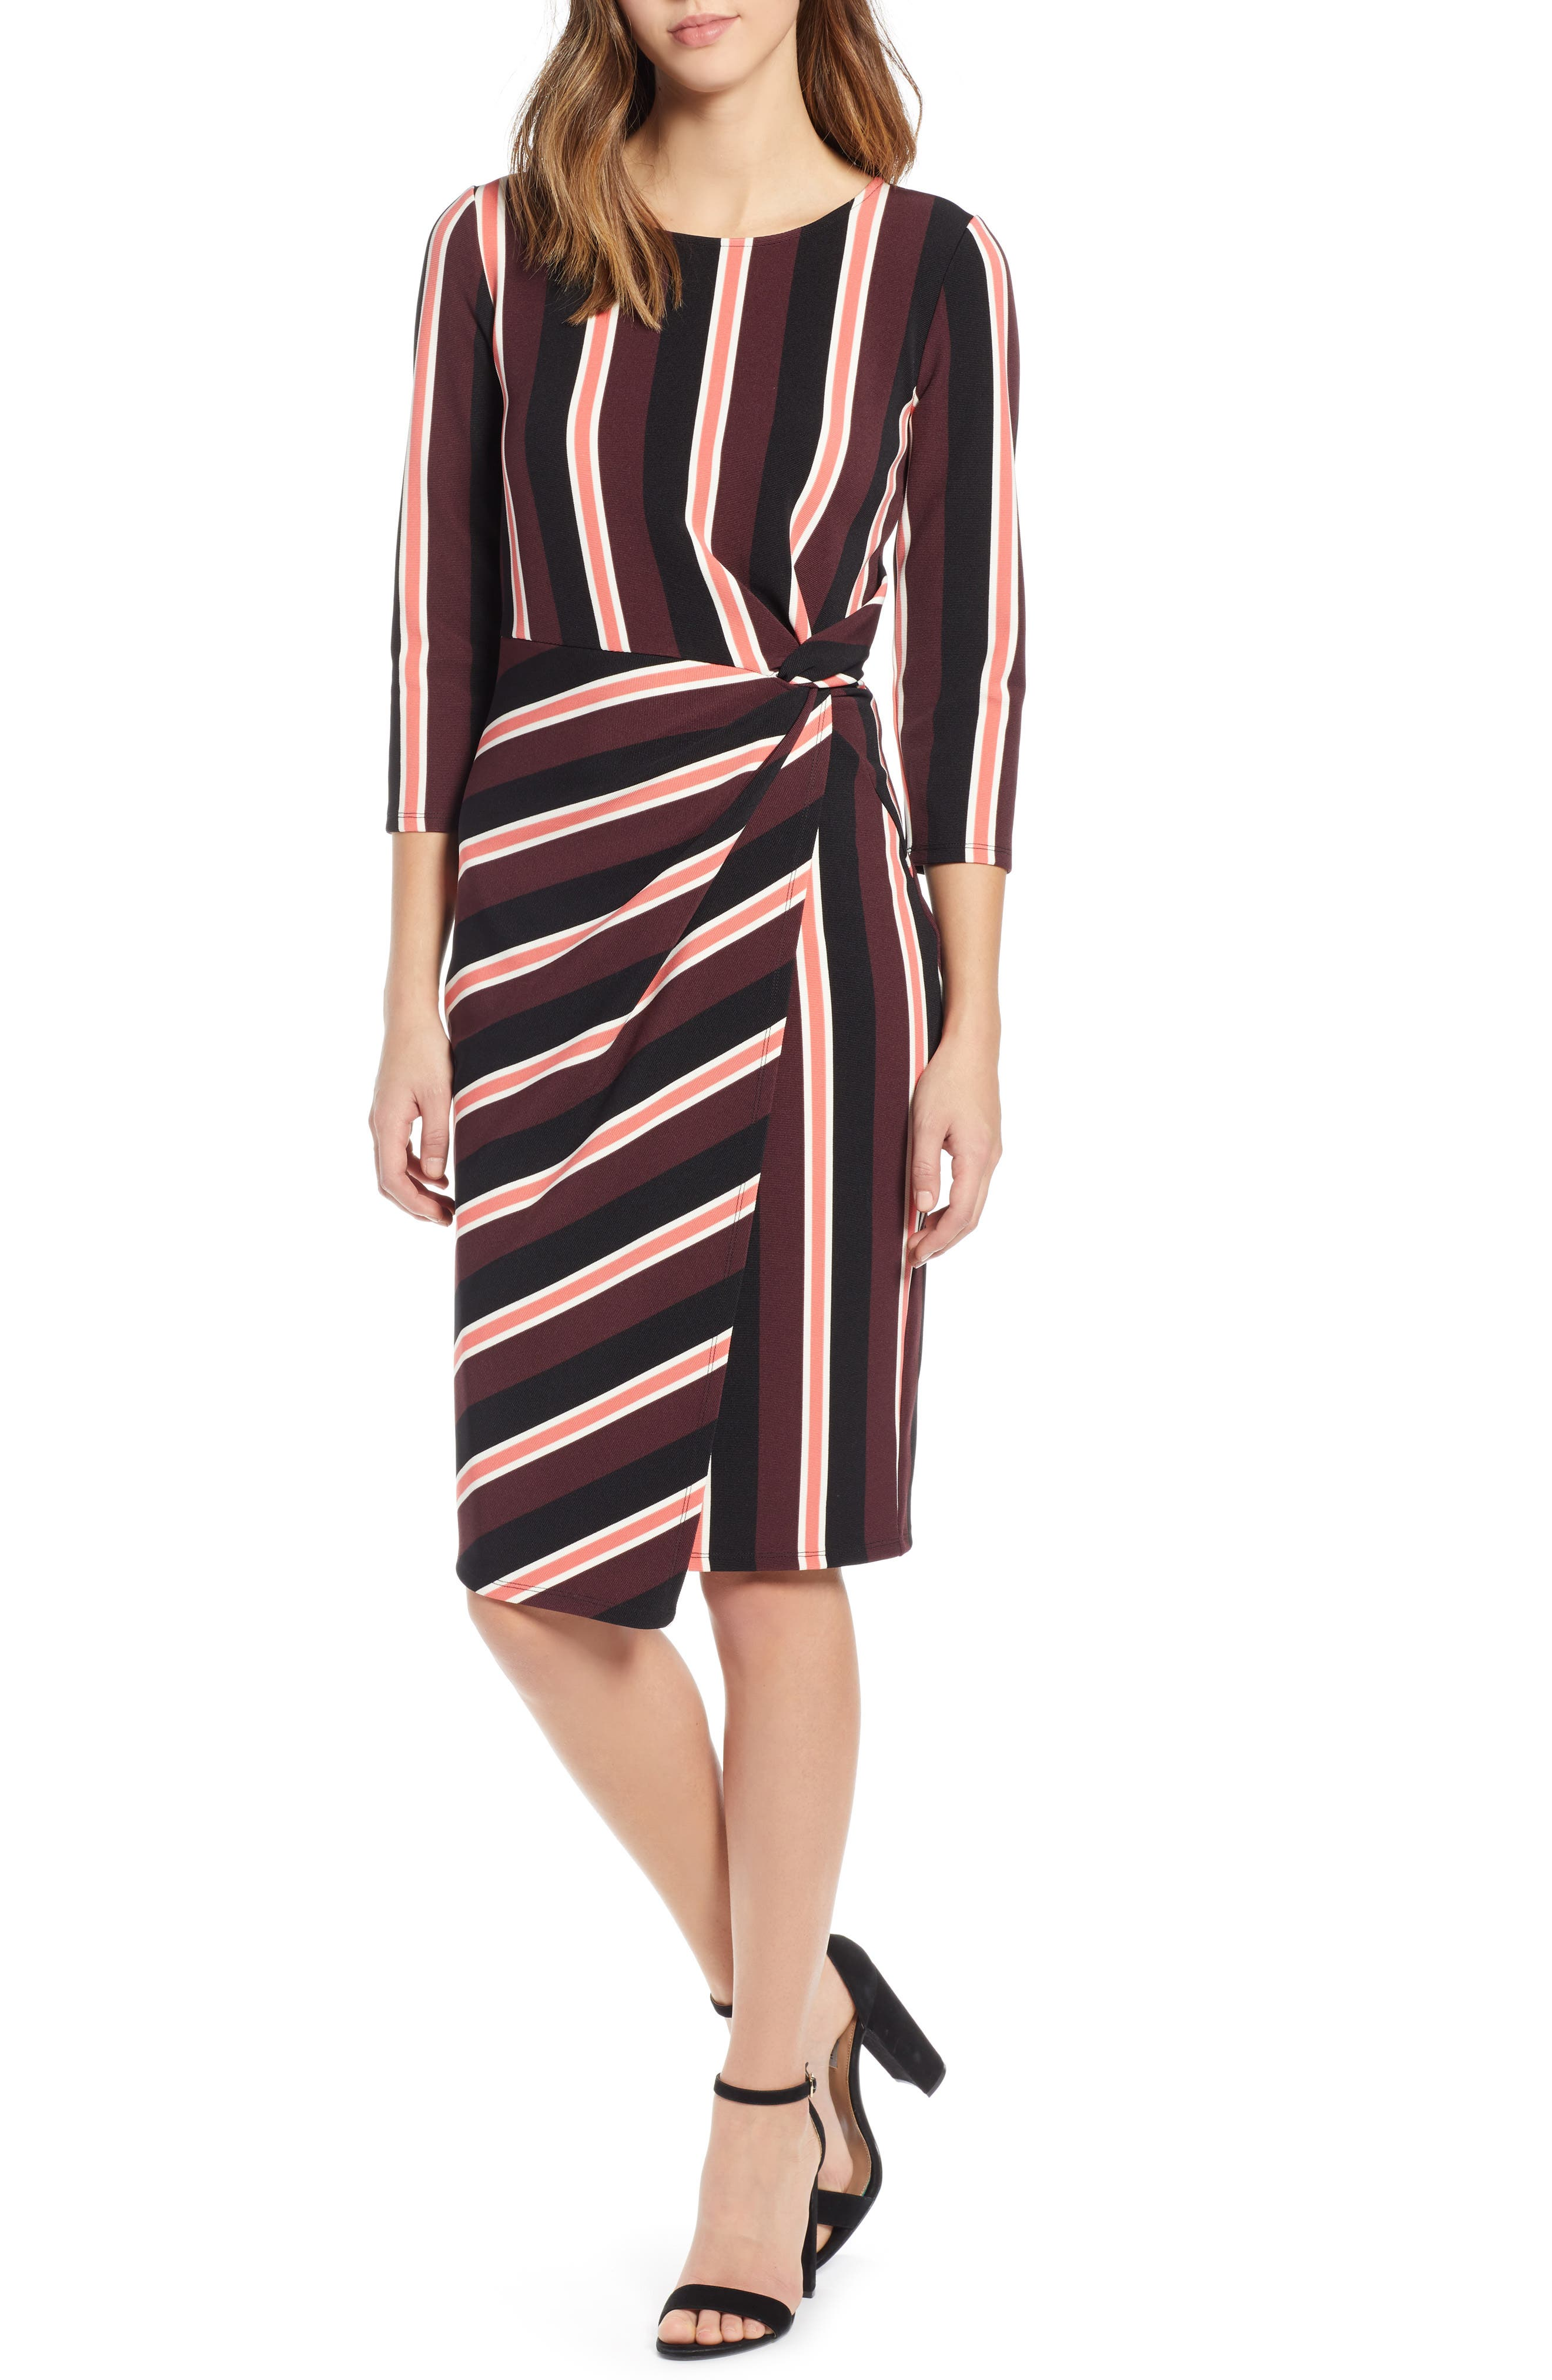 Socialite Side Twist Dress, Burgundy